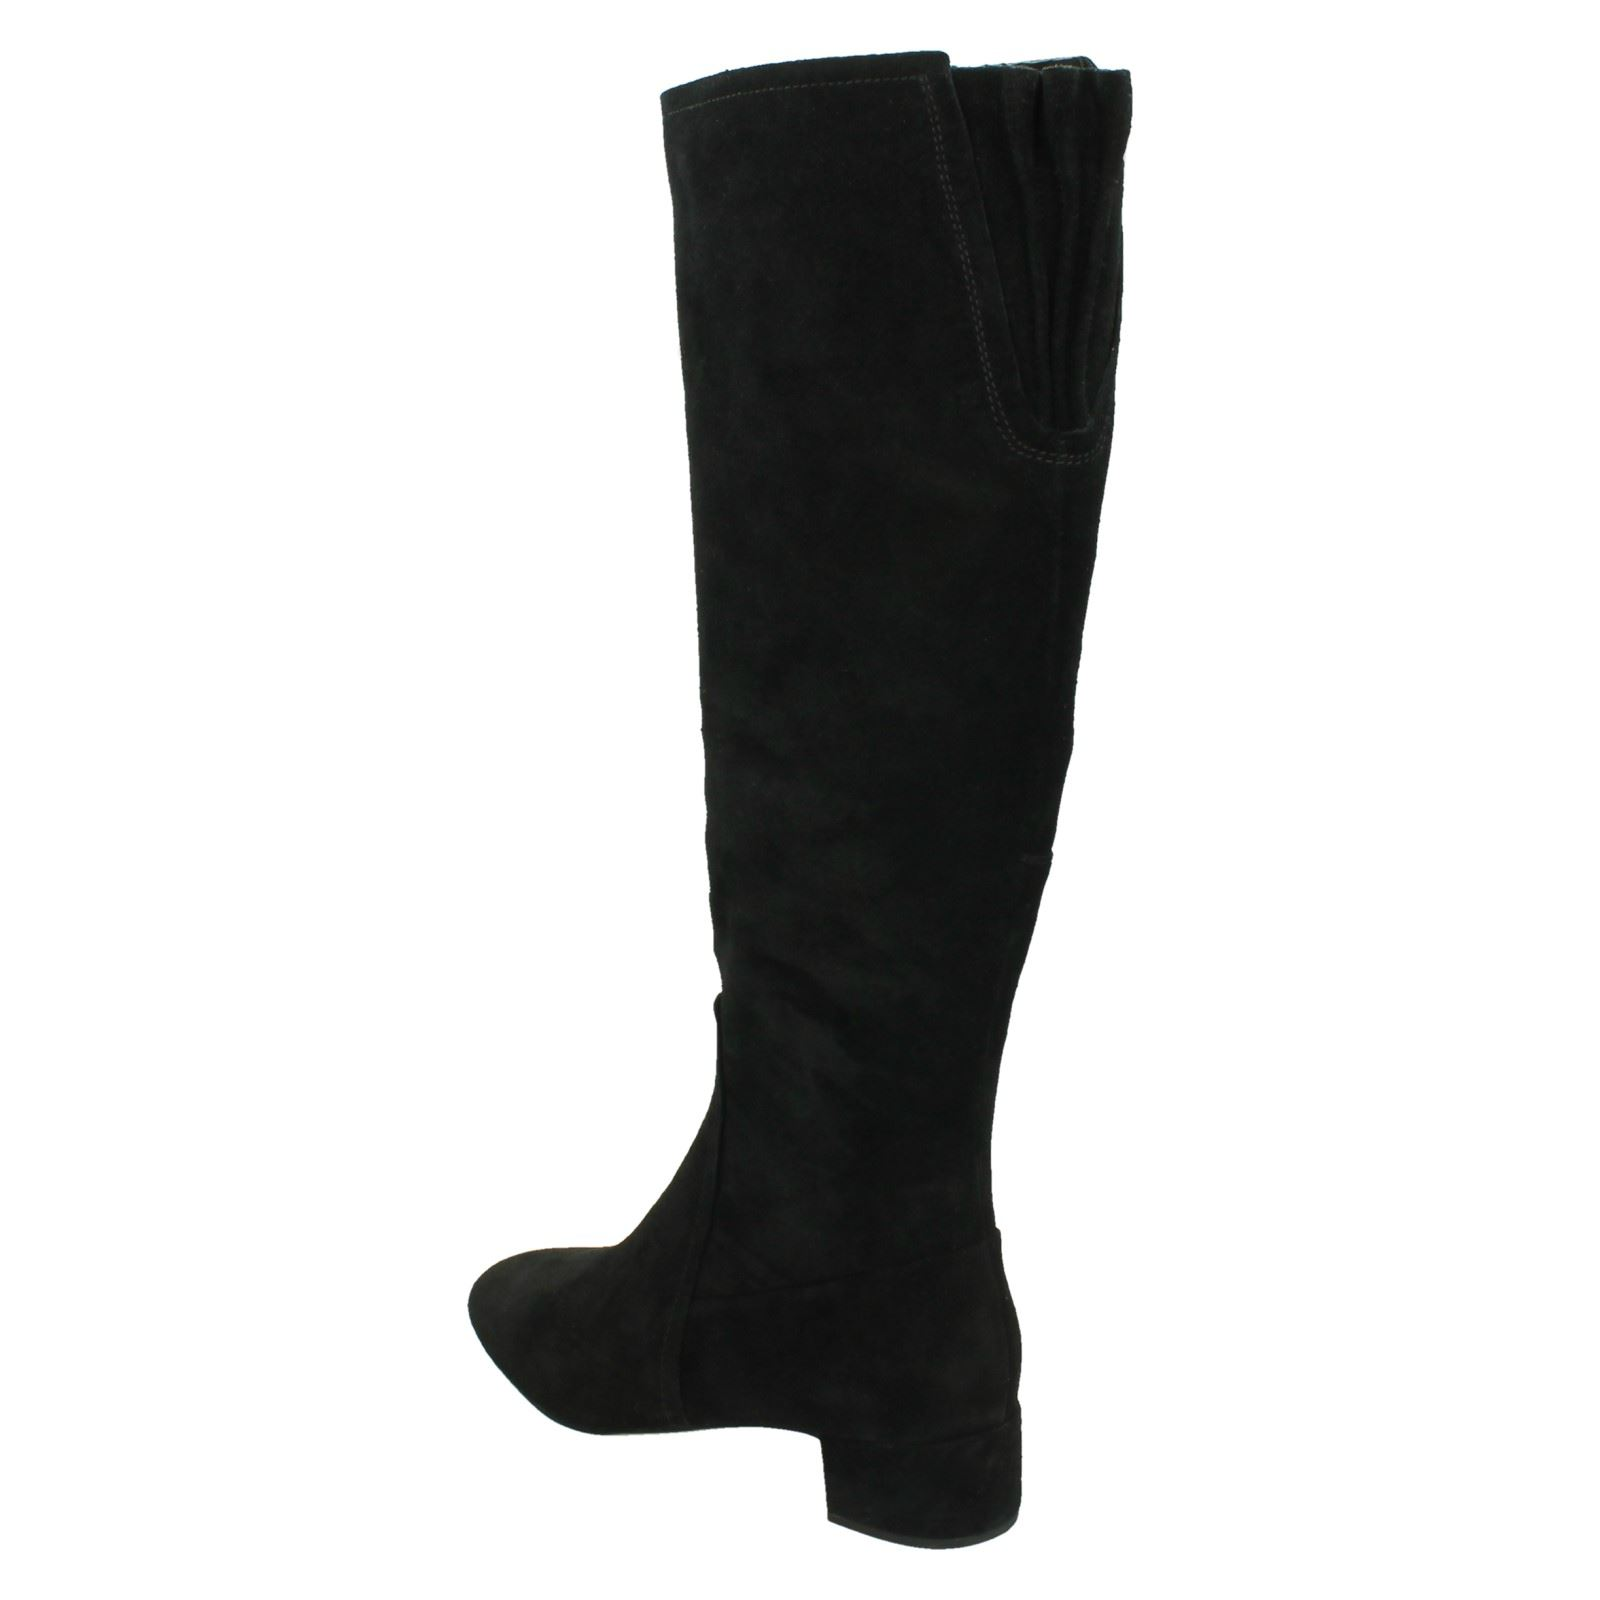 BNIB Clarks Ladies Orabella Ava Black Suede Knee High Boots